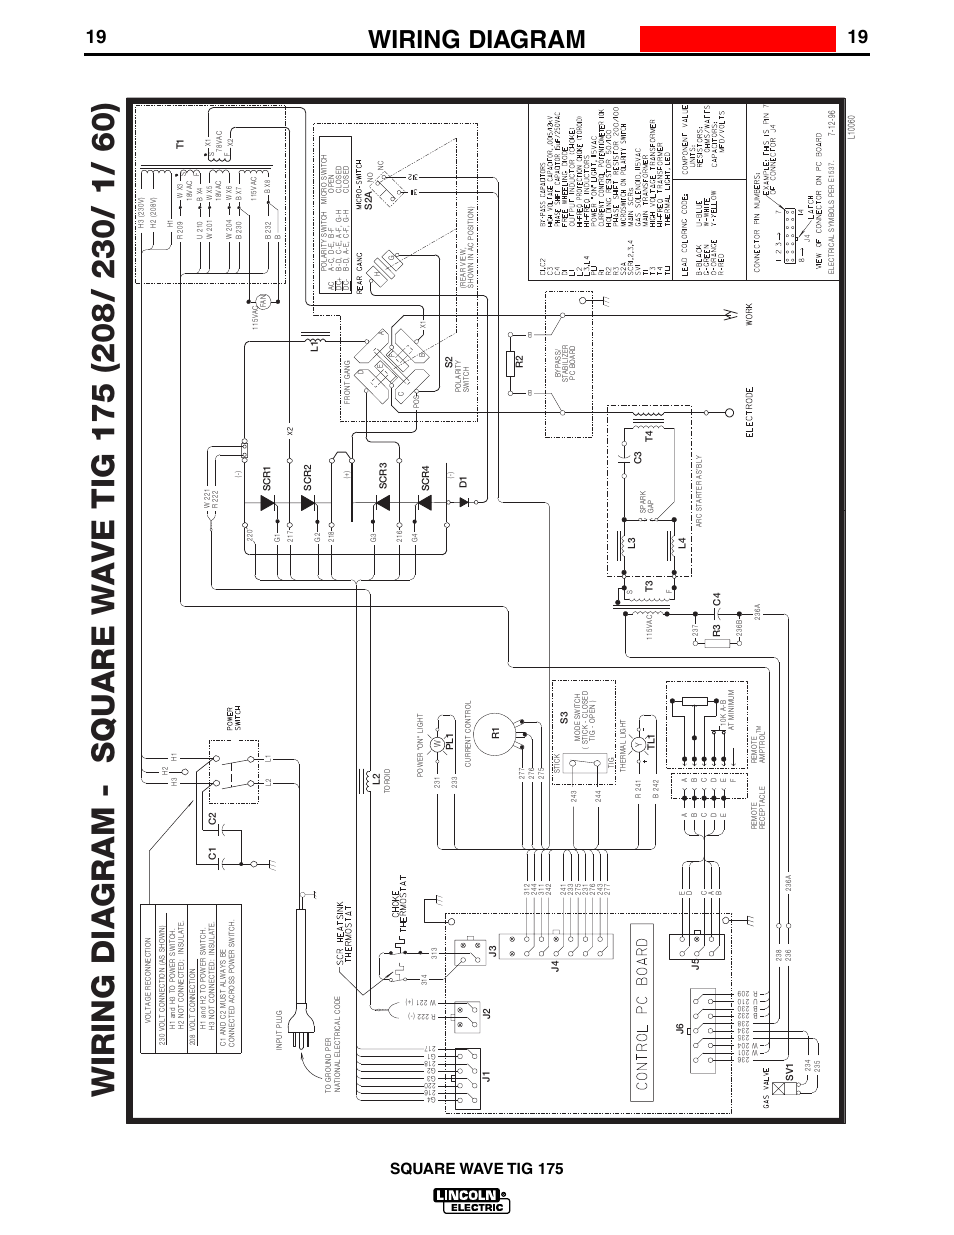 Wiring Diagram  Enhanced Diagram  Square Wave Tig 175